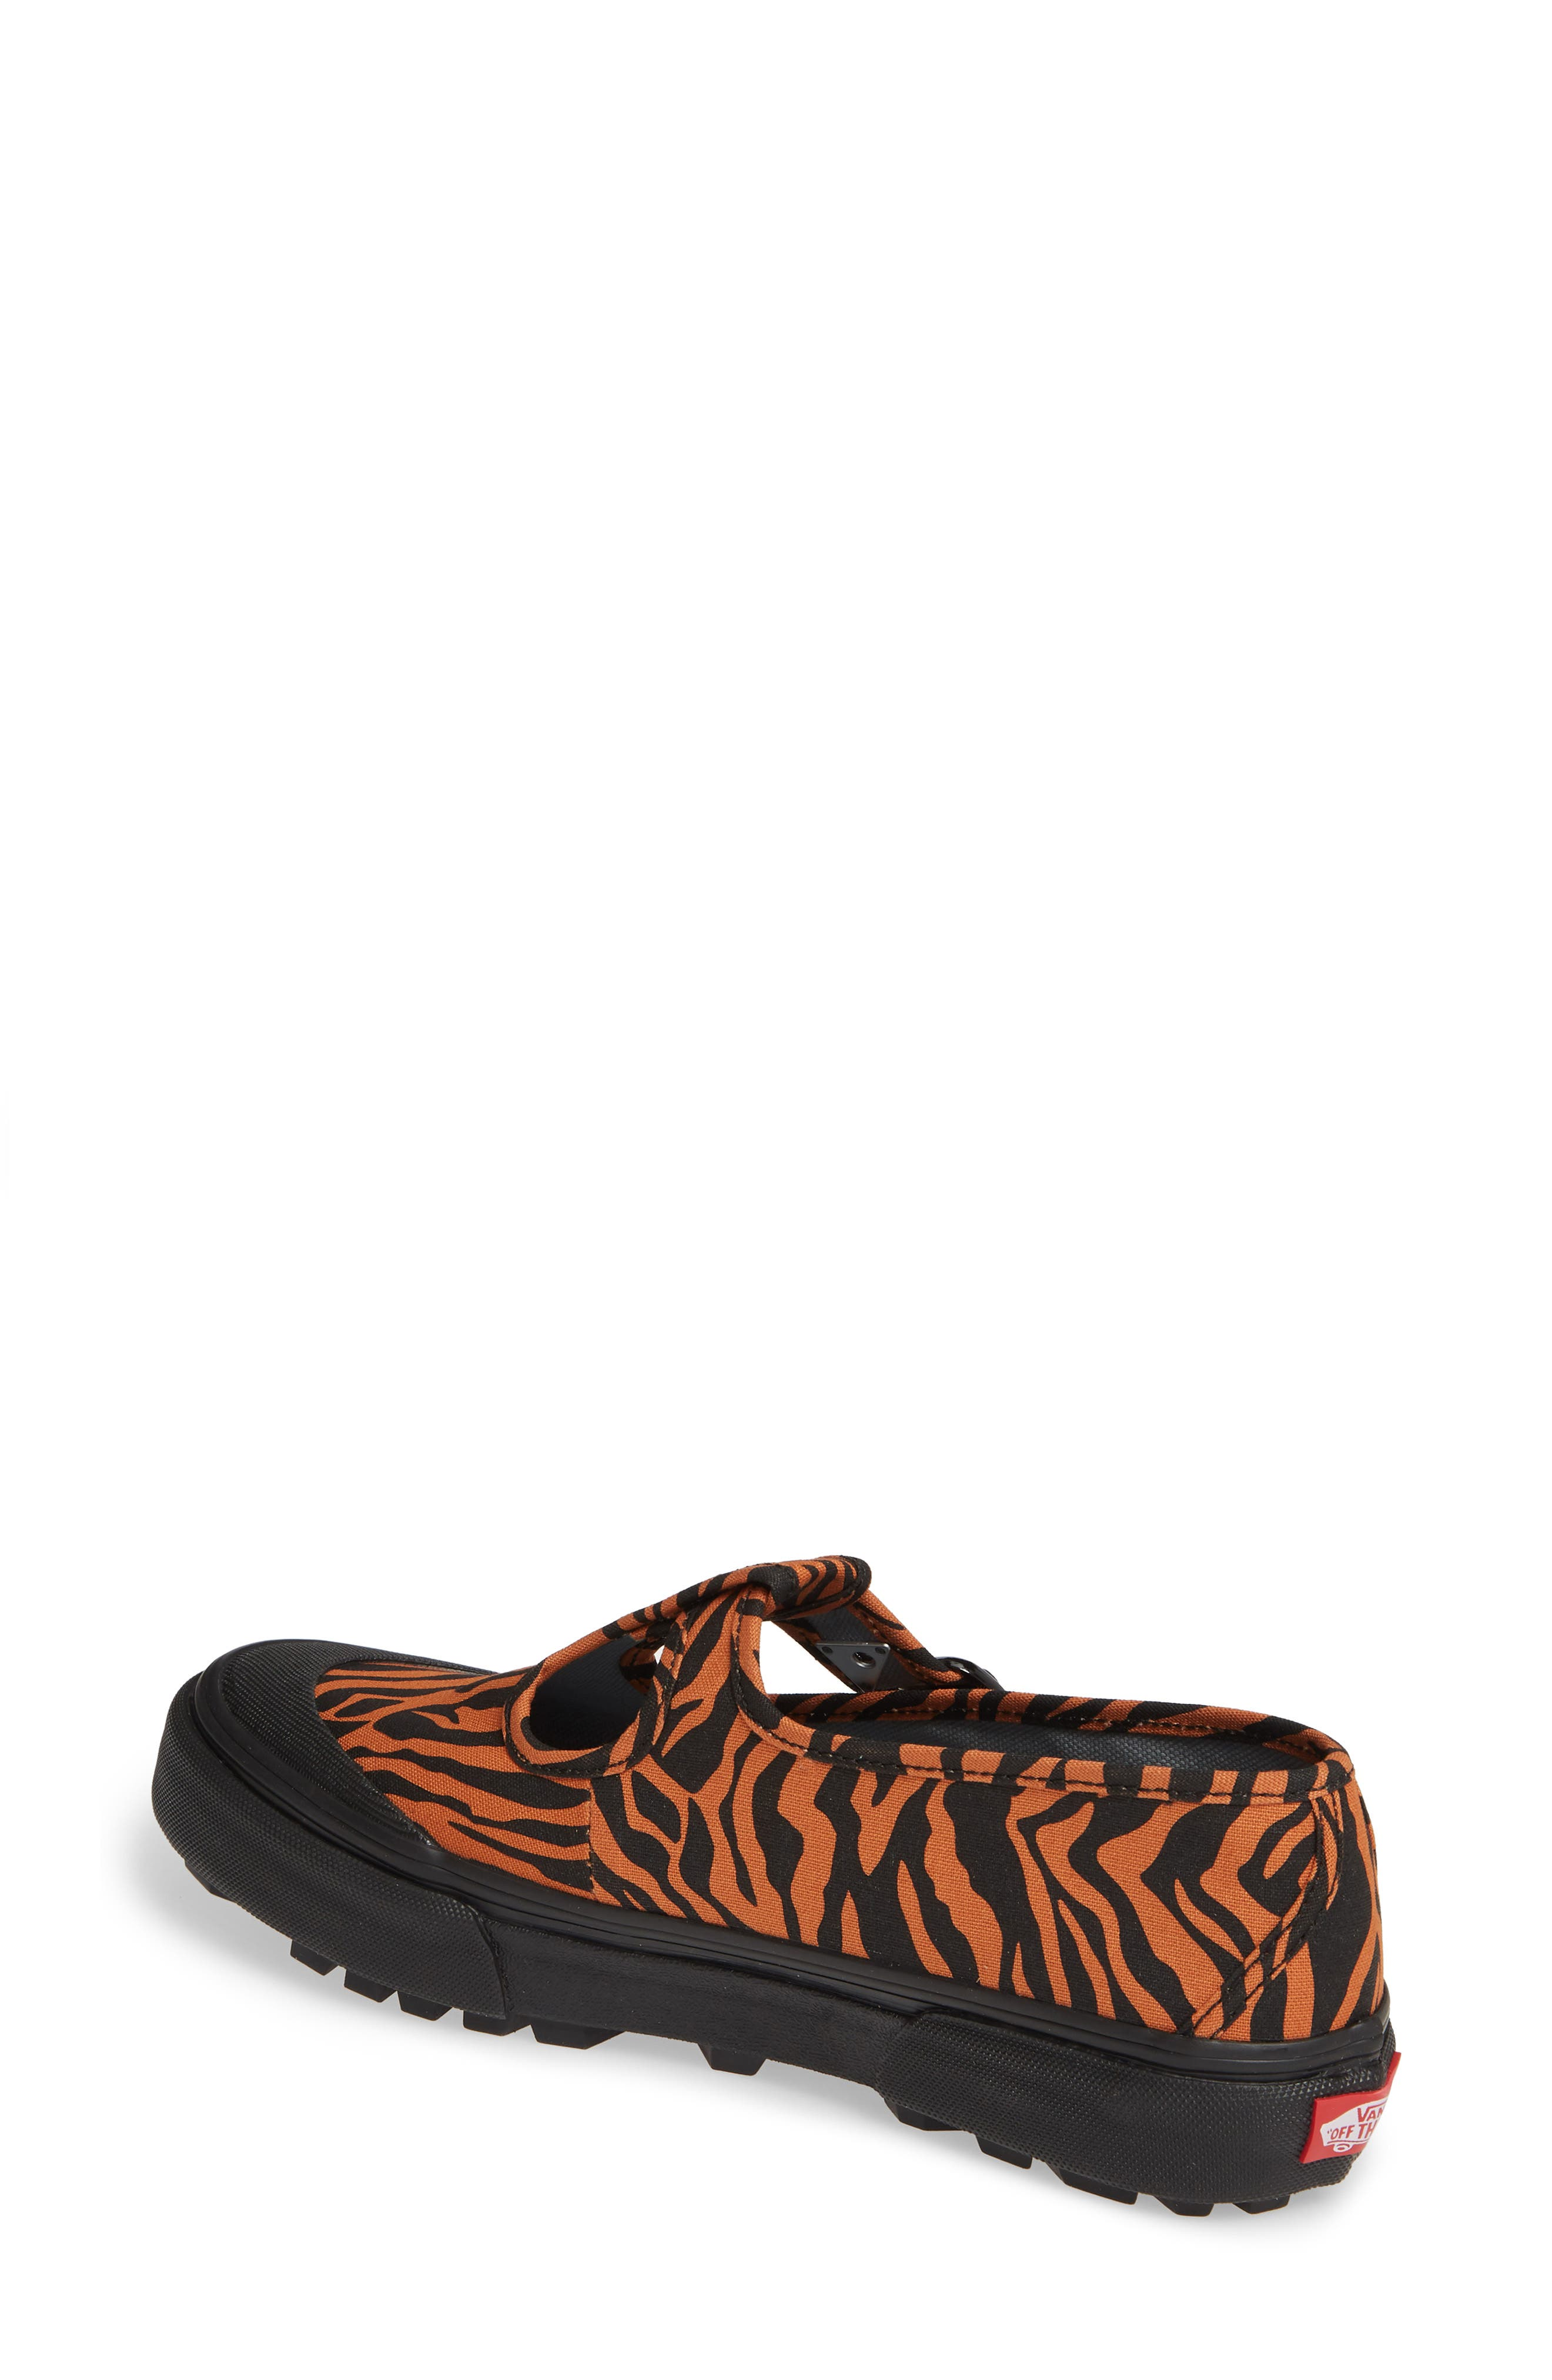 VANS, x Ashley Williams Style 38 Tiger Sneaker, Alternate thumbnail 2, color, TIGER/ BLACK